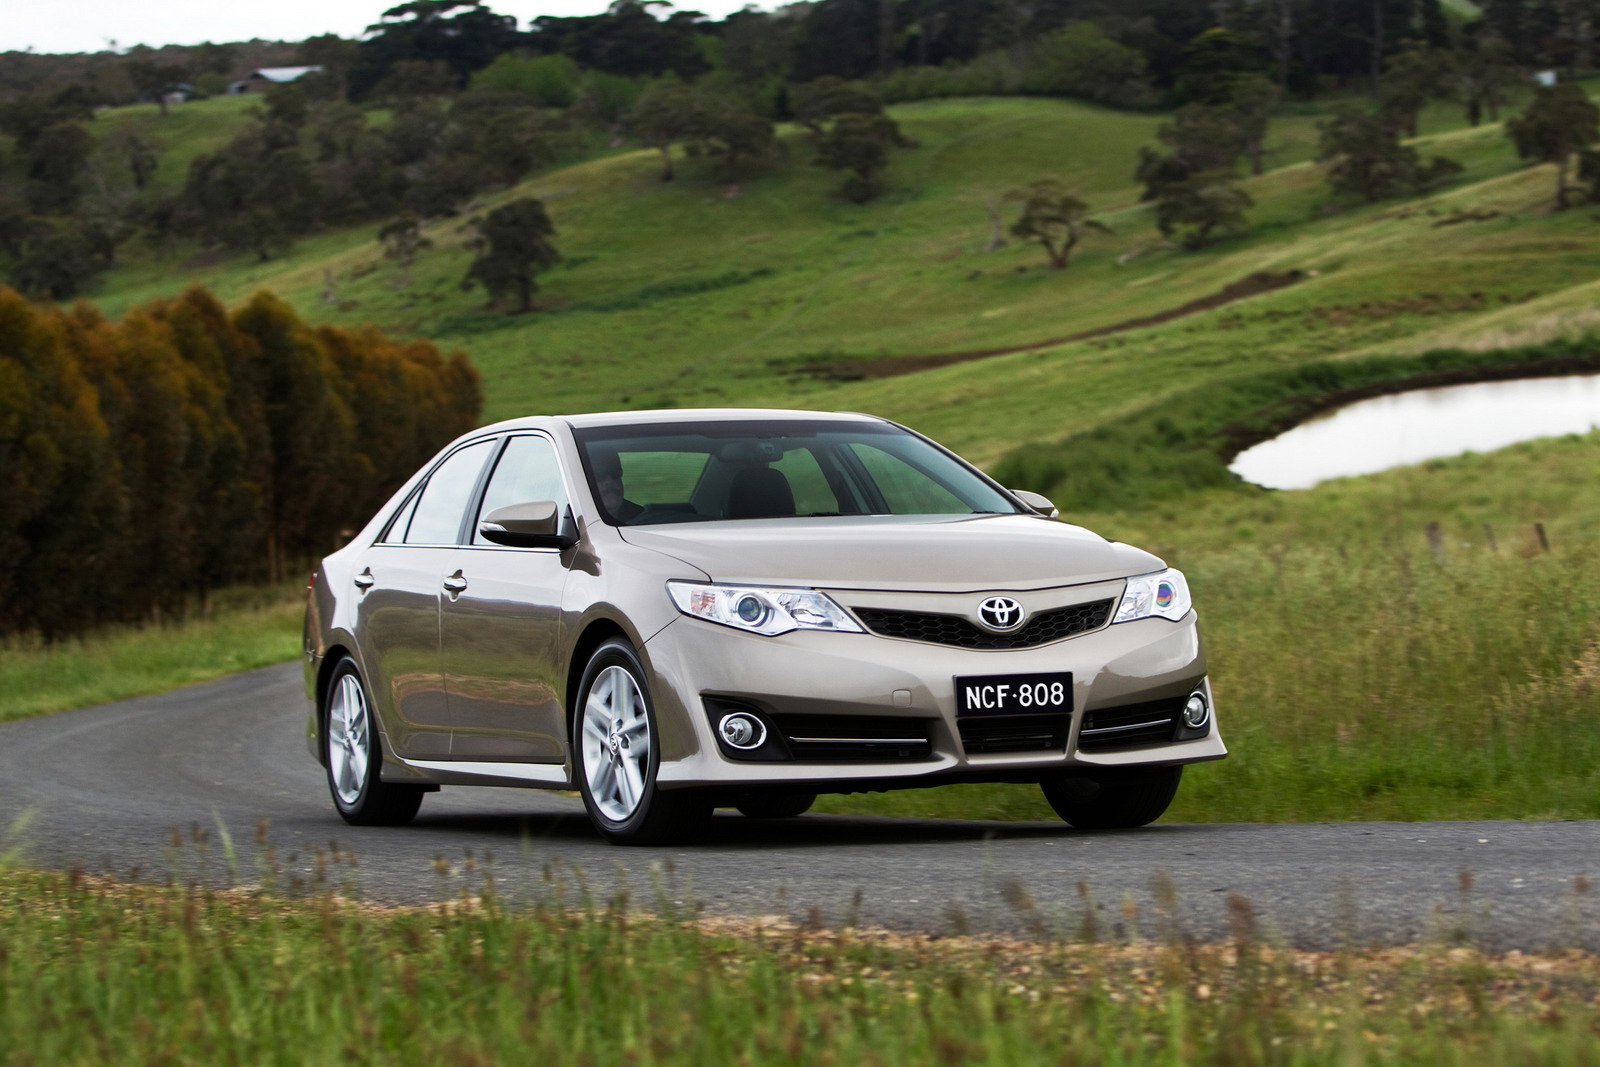 brand new toyota camry price in australia perbedaan grand veloz 1.3 dan 1.5 2012 for unveiled autoevolution